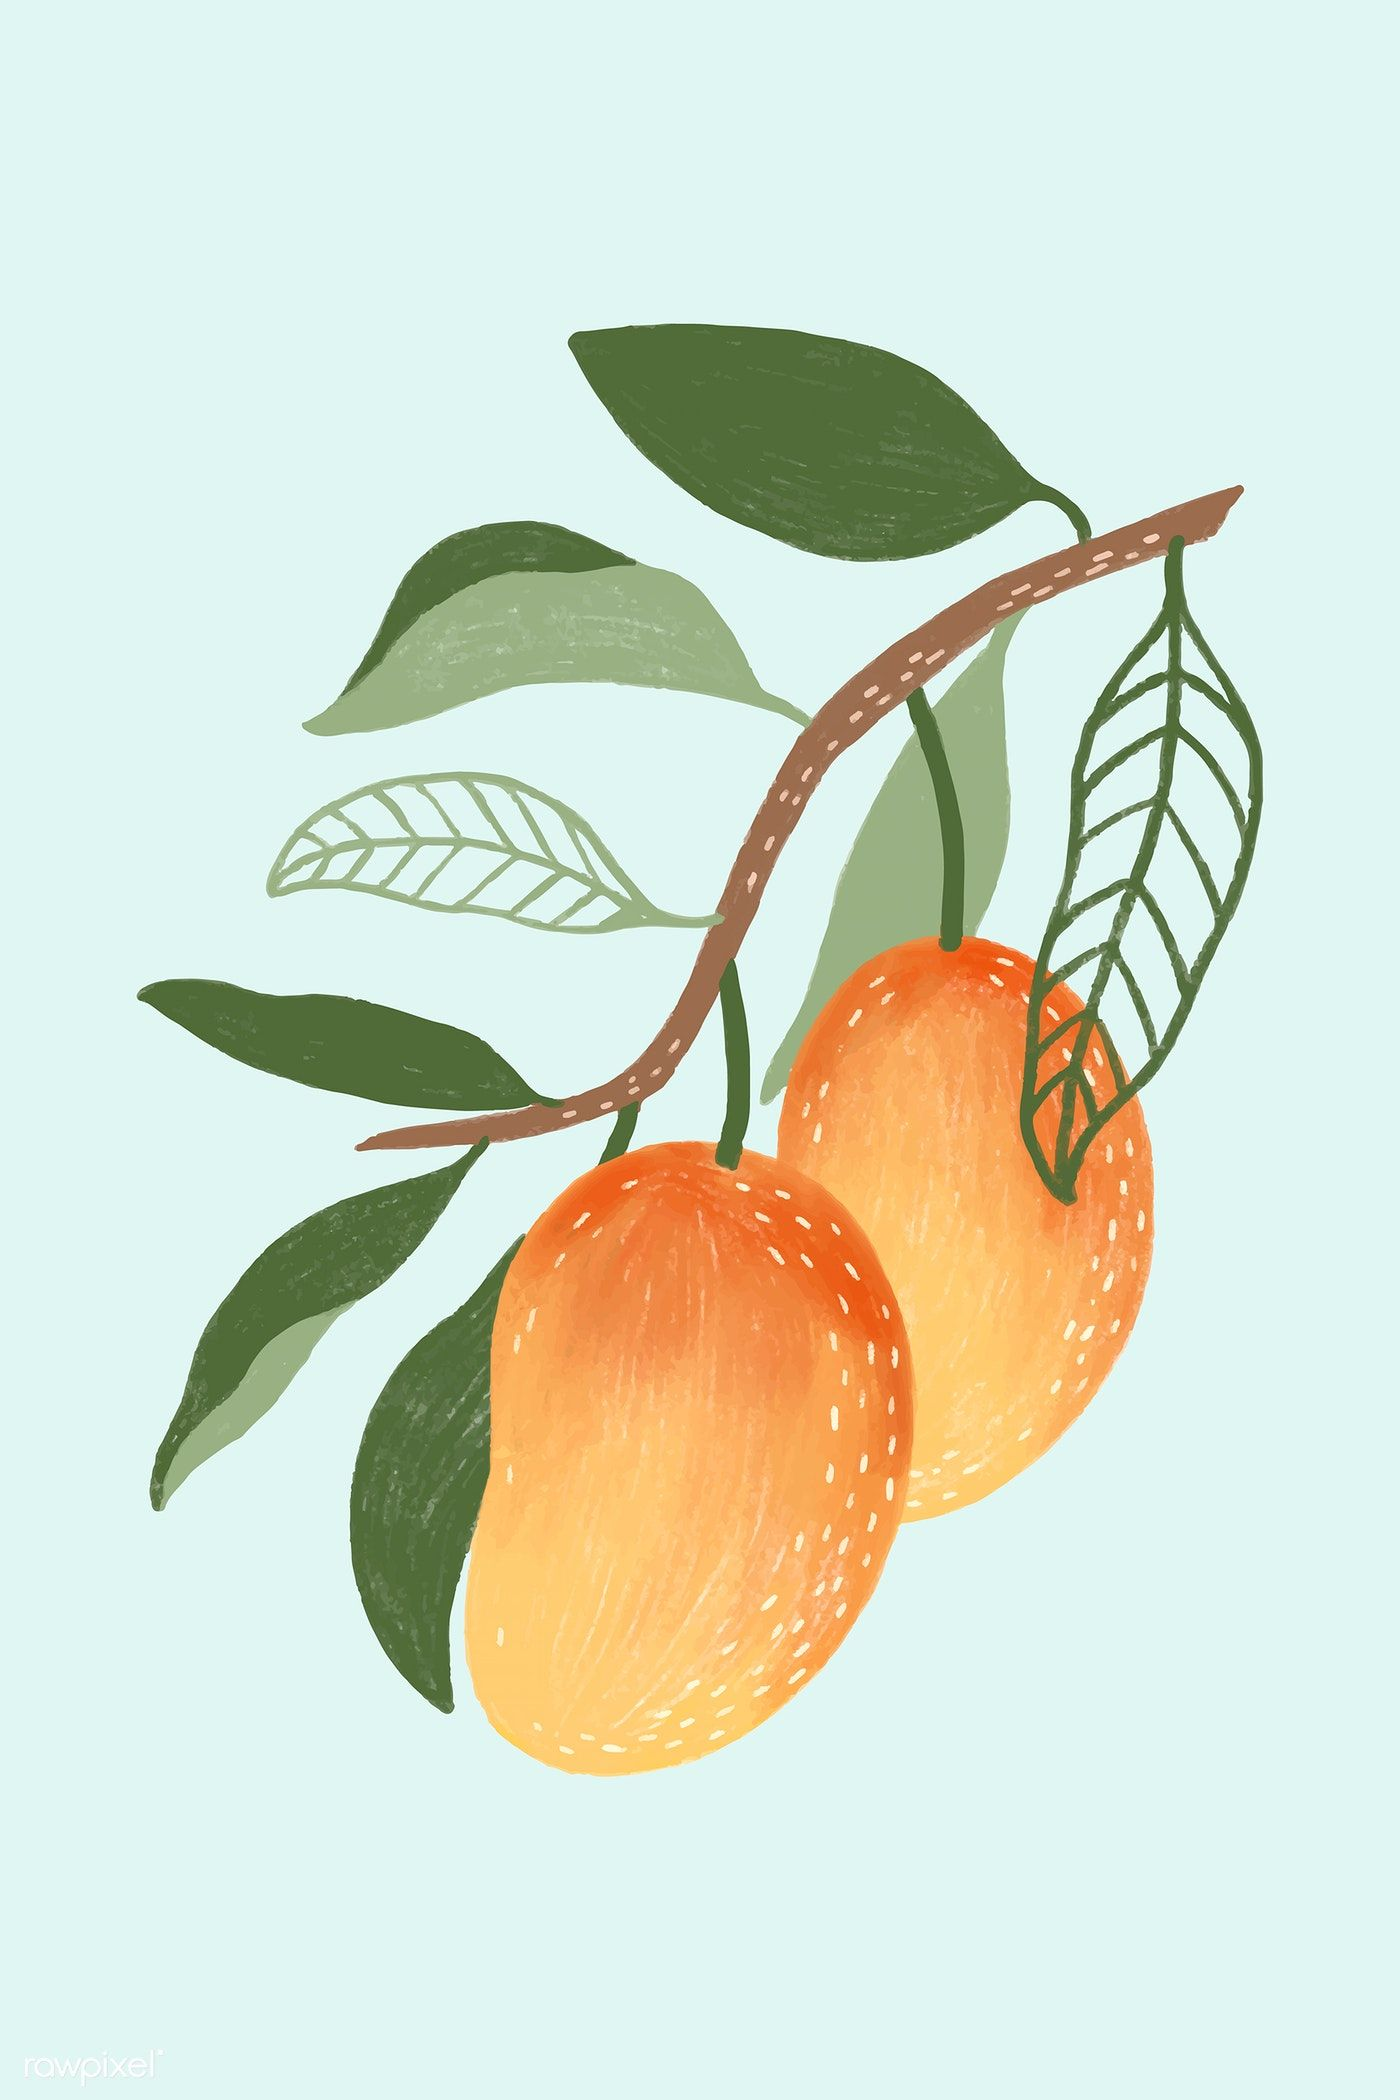 Download premium illustration of Hand drawn mango design